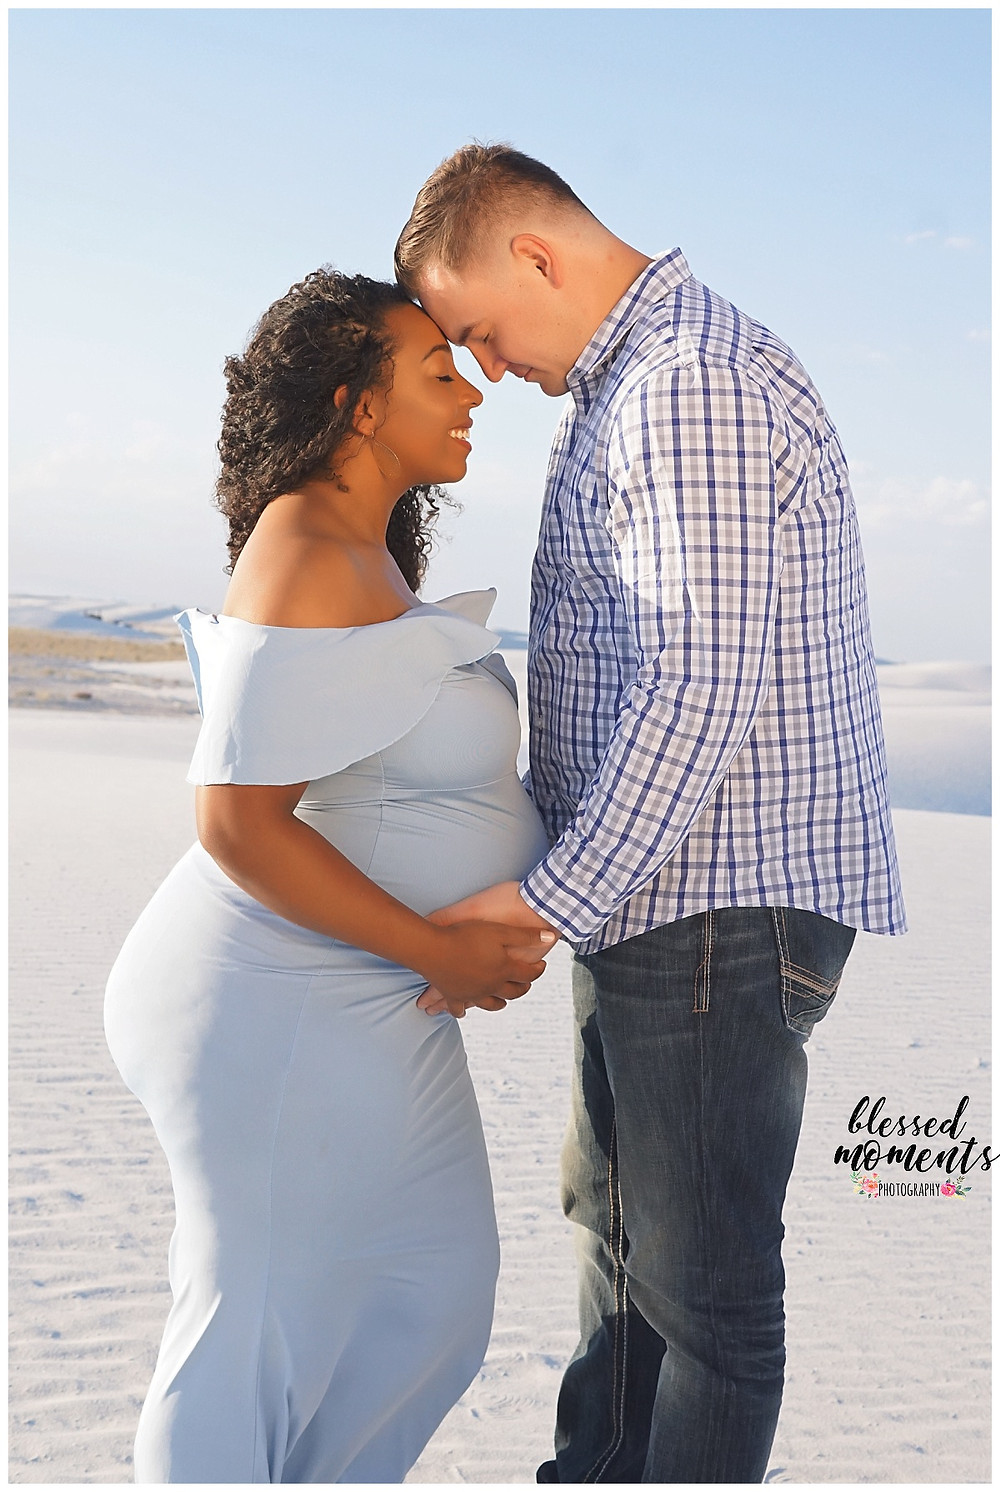 Proud future mama and papa embracing at White Sands for Maternity photos